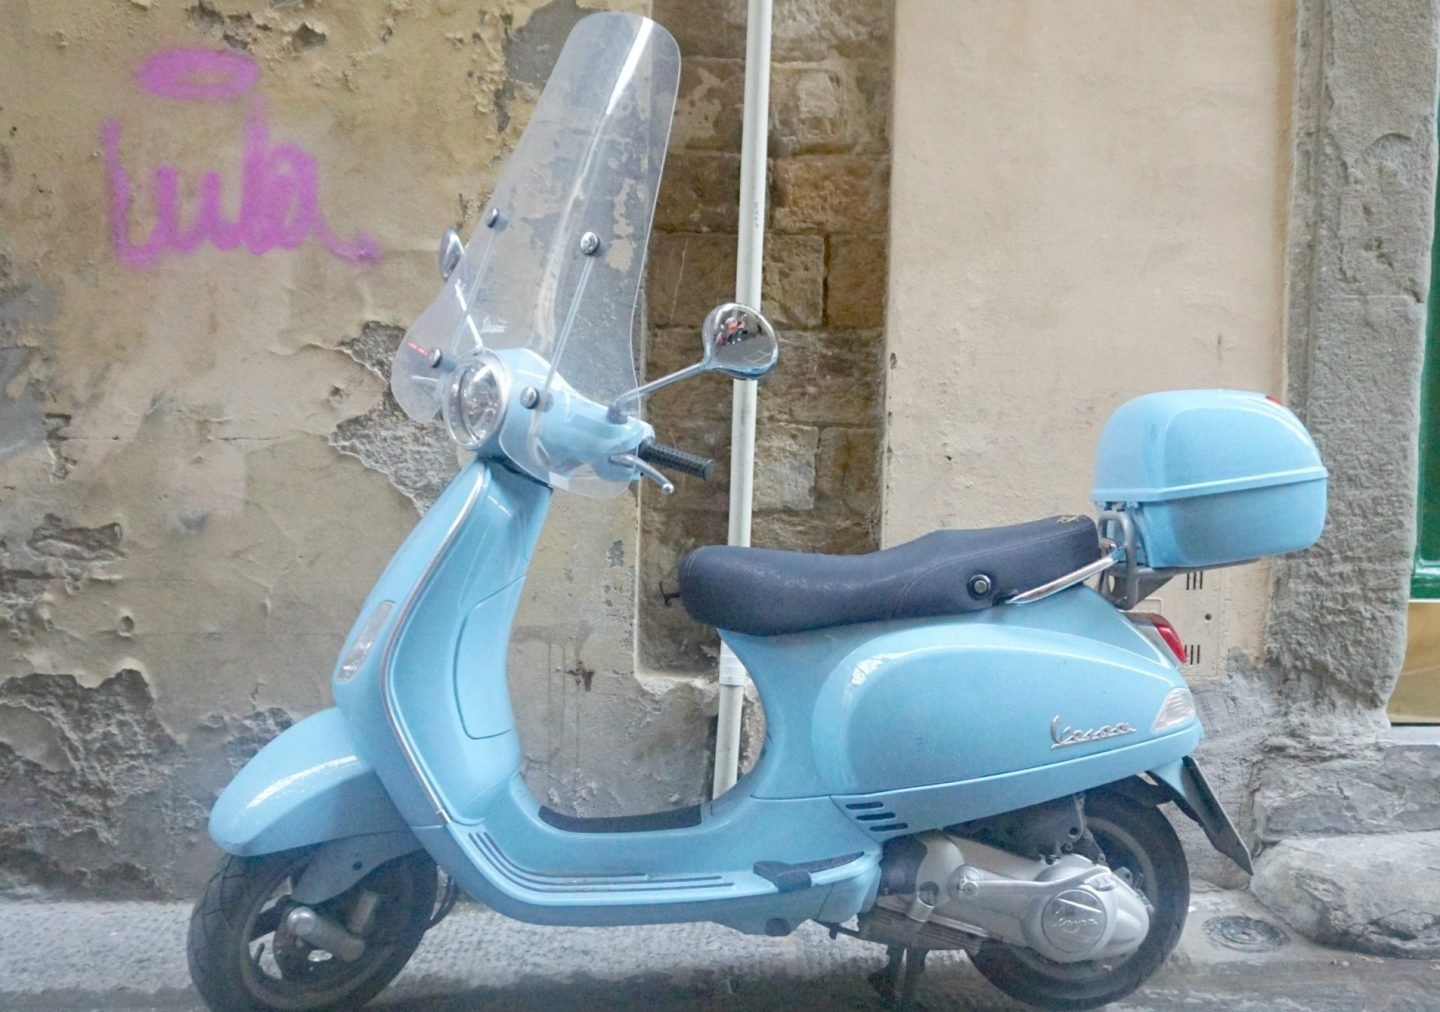 A vespa and street art in Tuscany www.extraordinarychaos.com